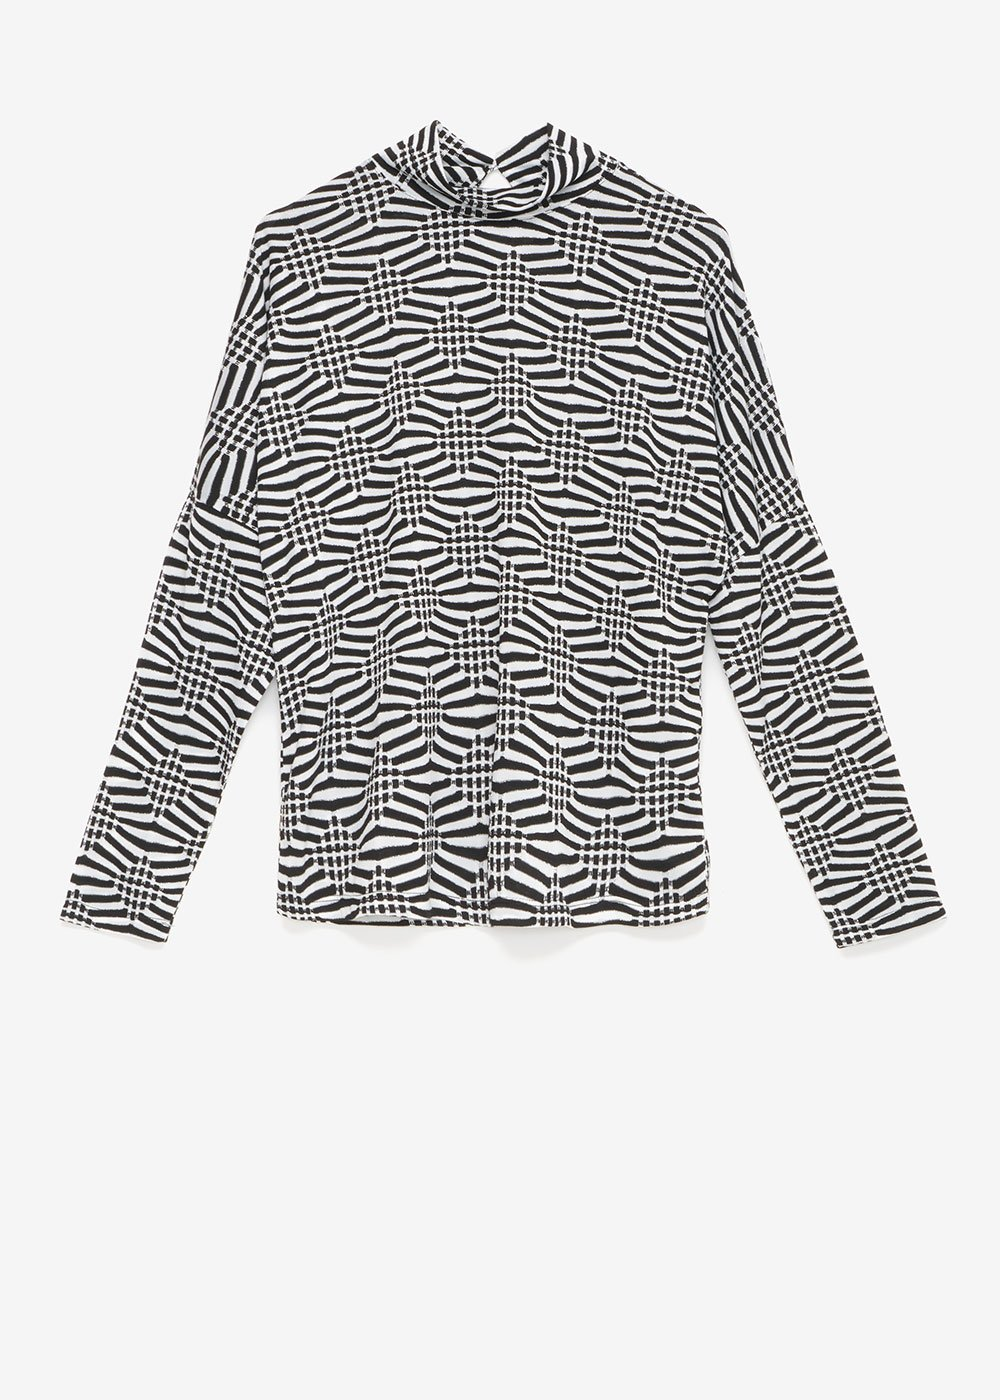 Sheila T-shirt with black and white pattern - Black / White / Multi - Woman